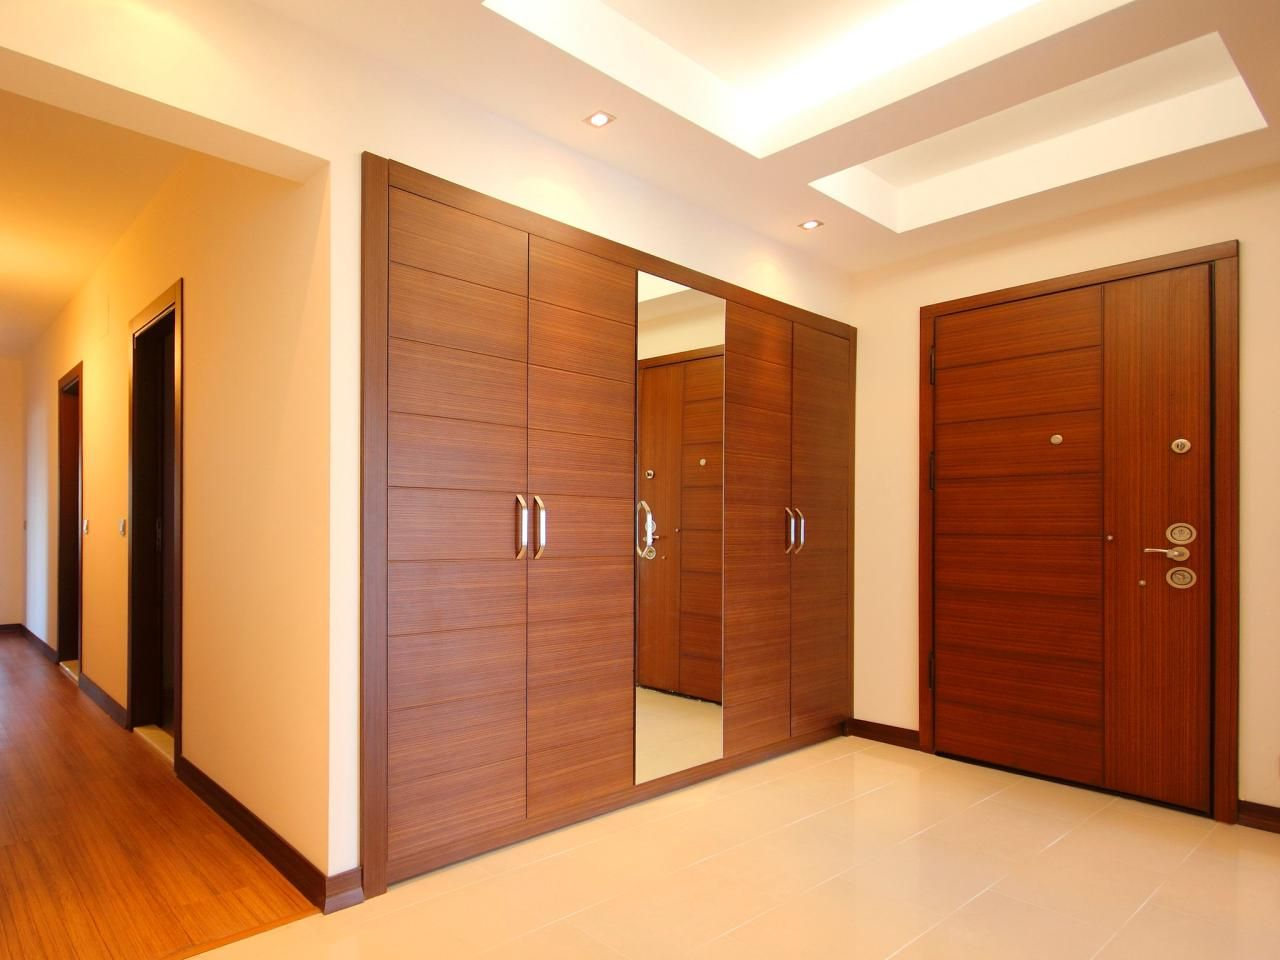 closet door options ideas for concealing your storage. Black Bedroom Furniture Sets. Home Design Ideas